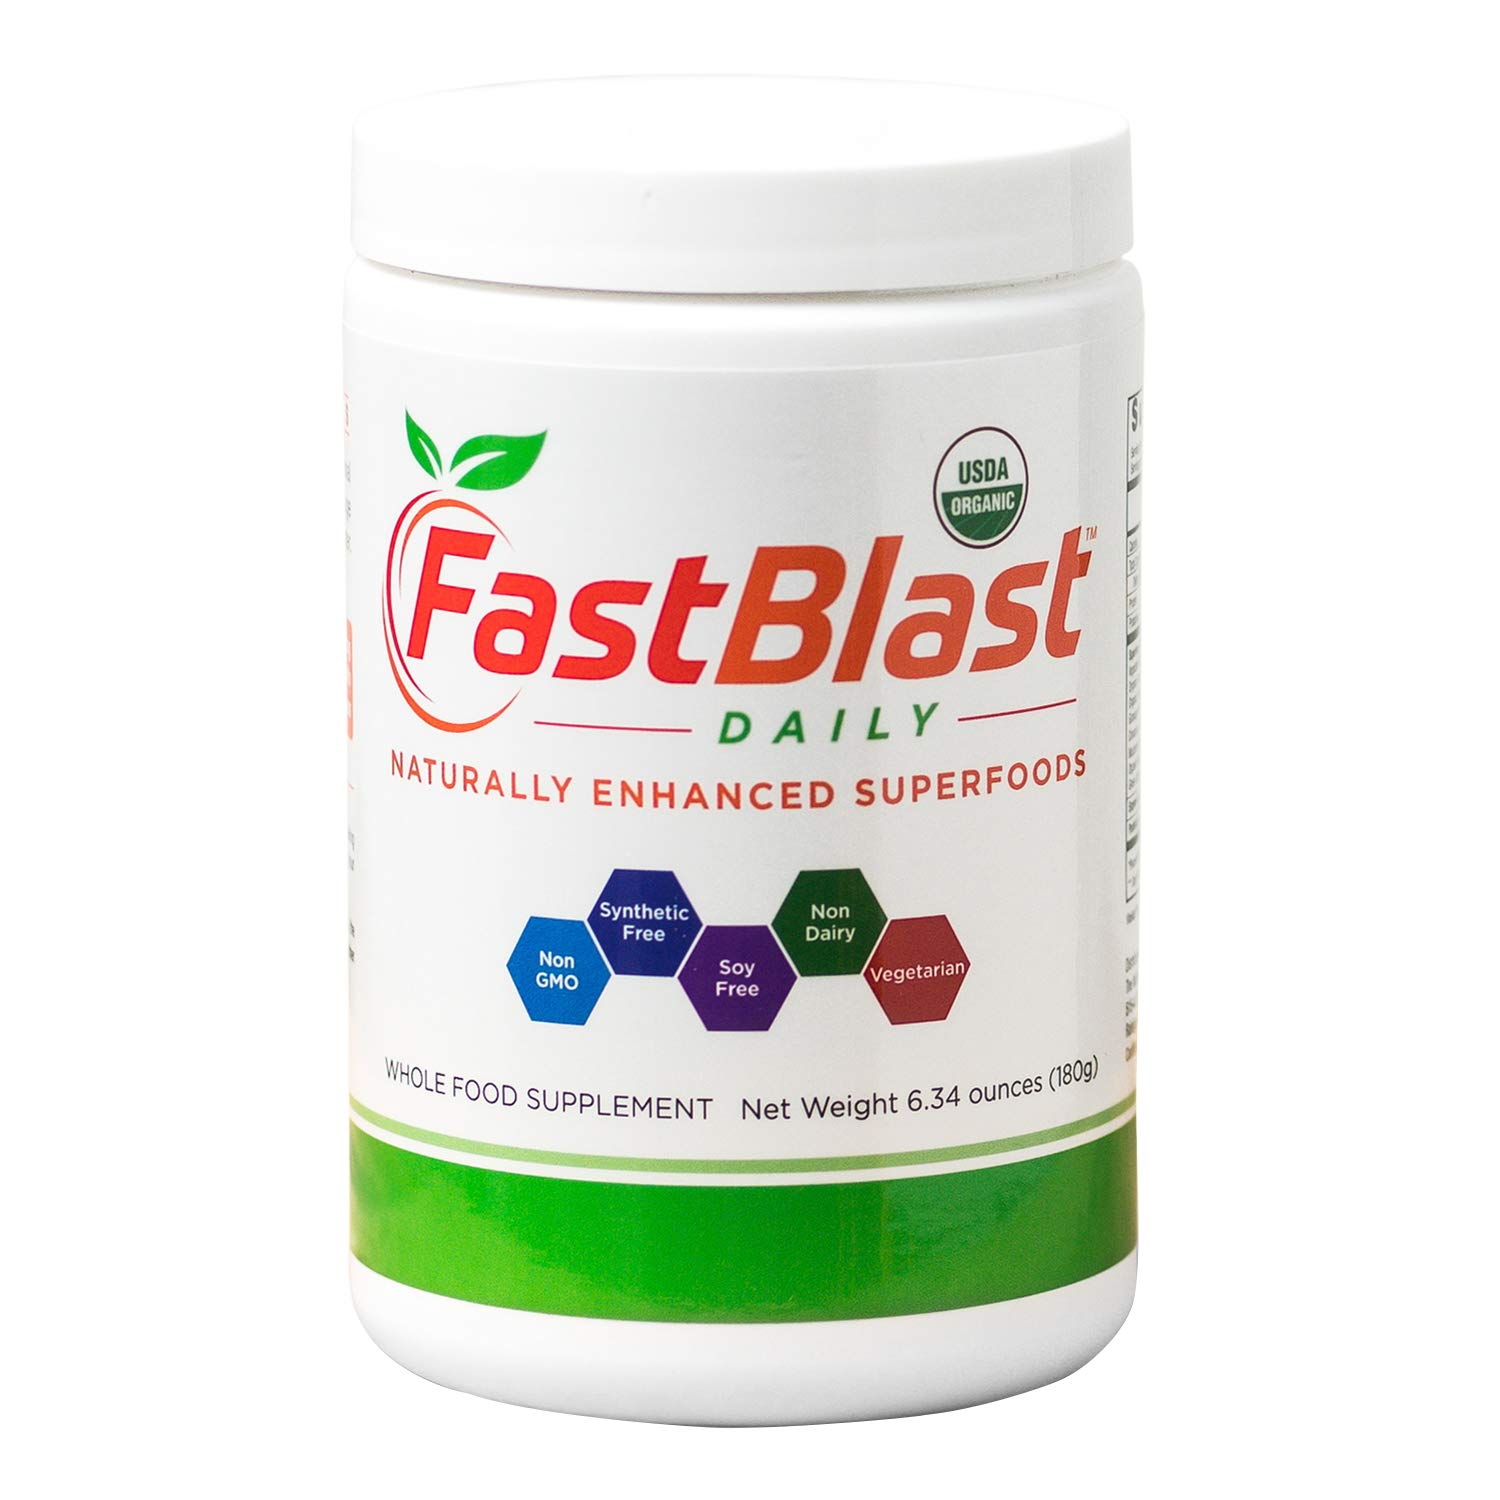 FastBlast Daily Essentials | Fermented Organic Superfood Powder for Health & Vitality | Supports Brain, Heart, Immune, Digestive Systems by FastBlast